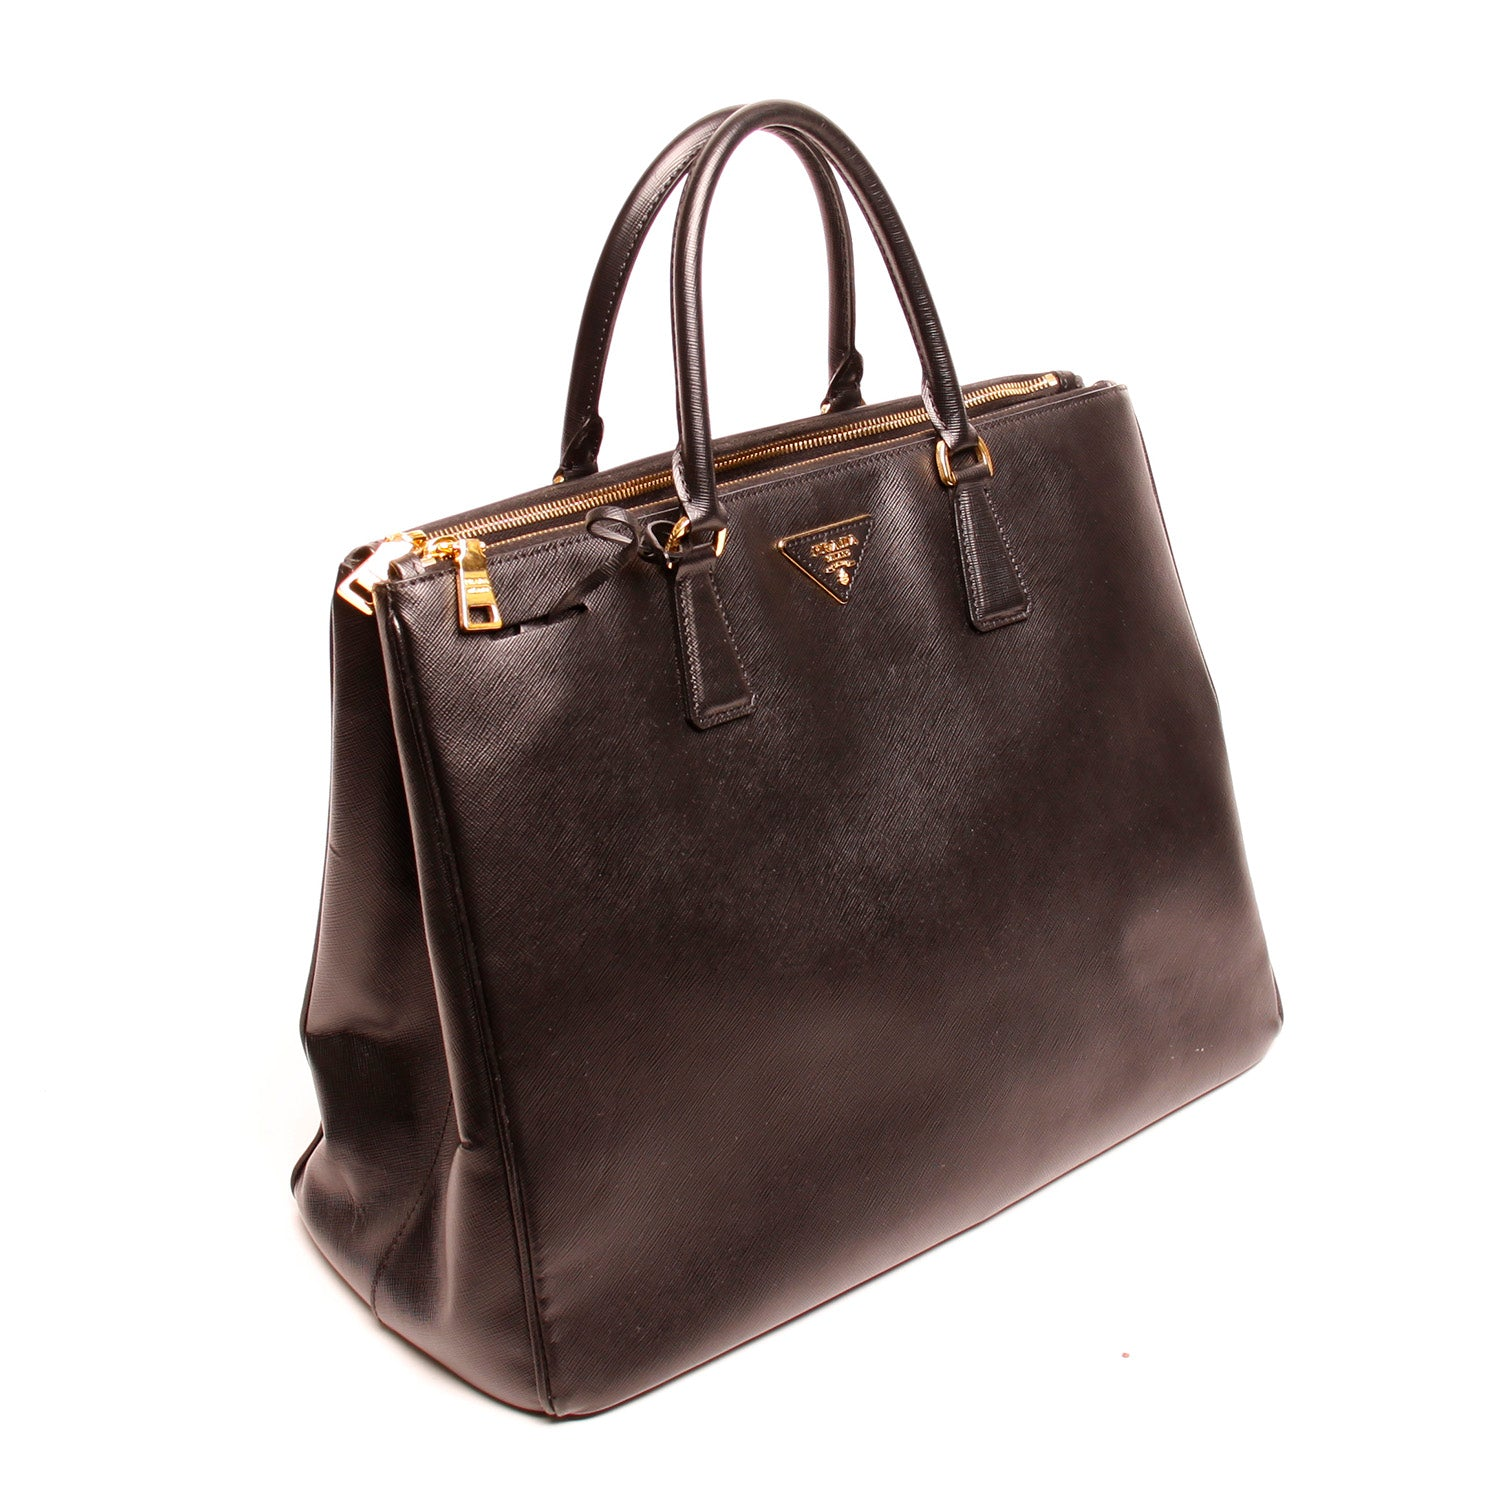 b5dc4a0d8fbc ... Load image into Gallery viewer, Prada Nero Saffiano Lux Double-Zip Tote  Handbag ...